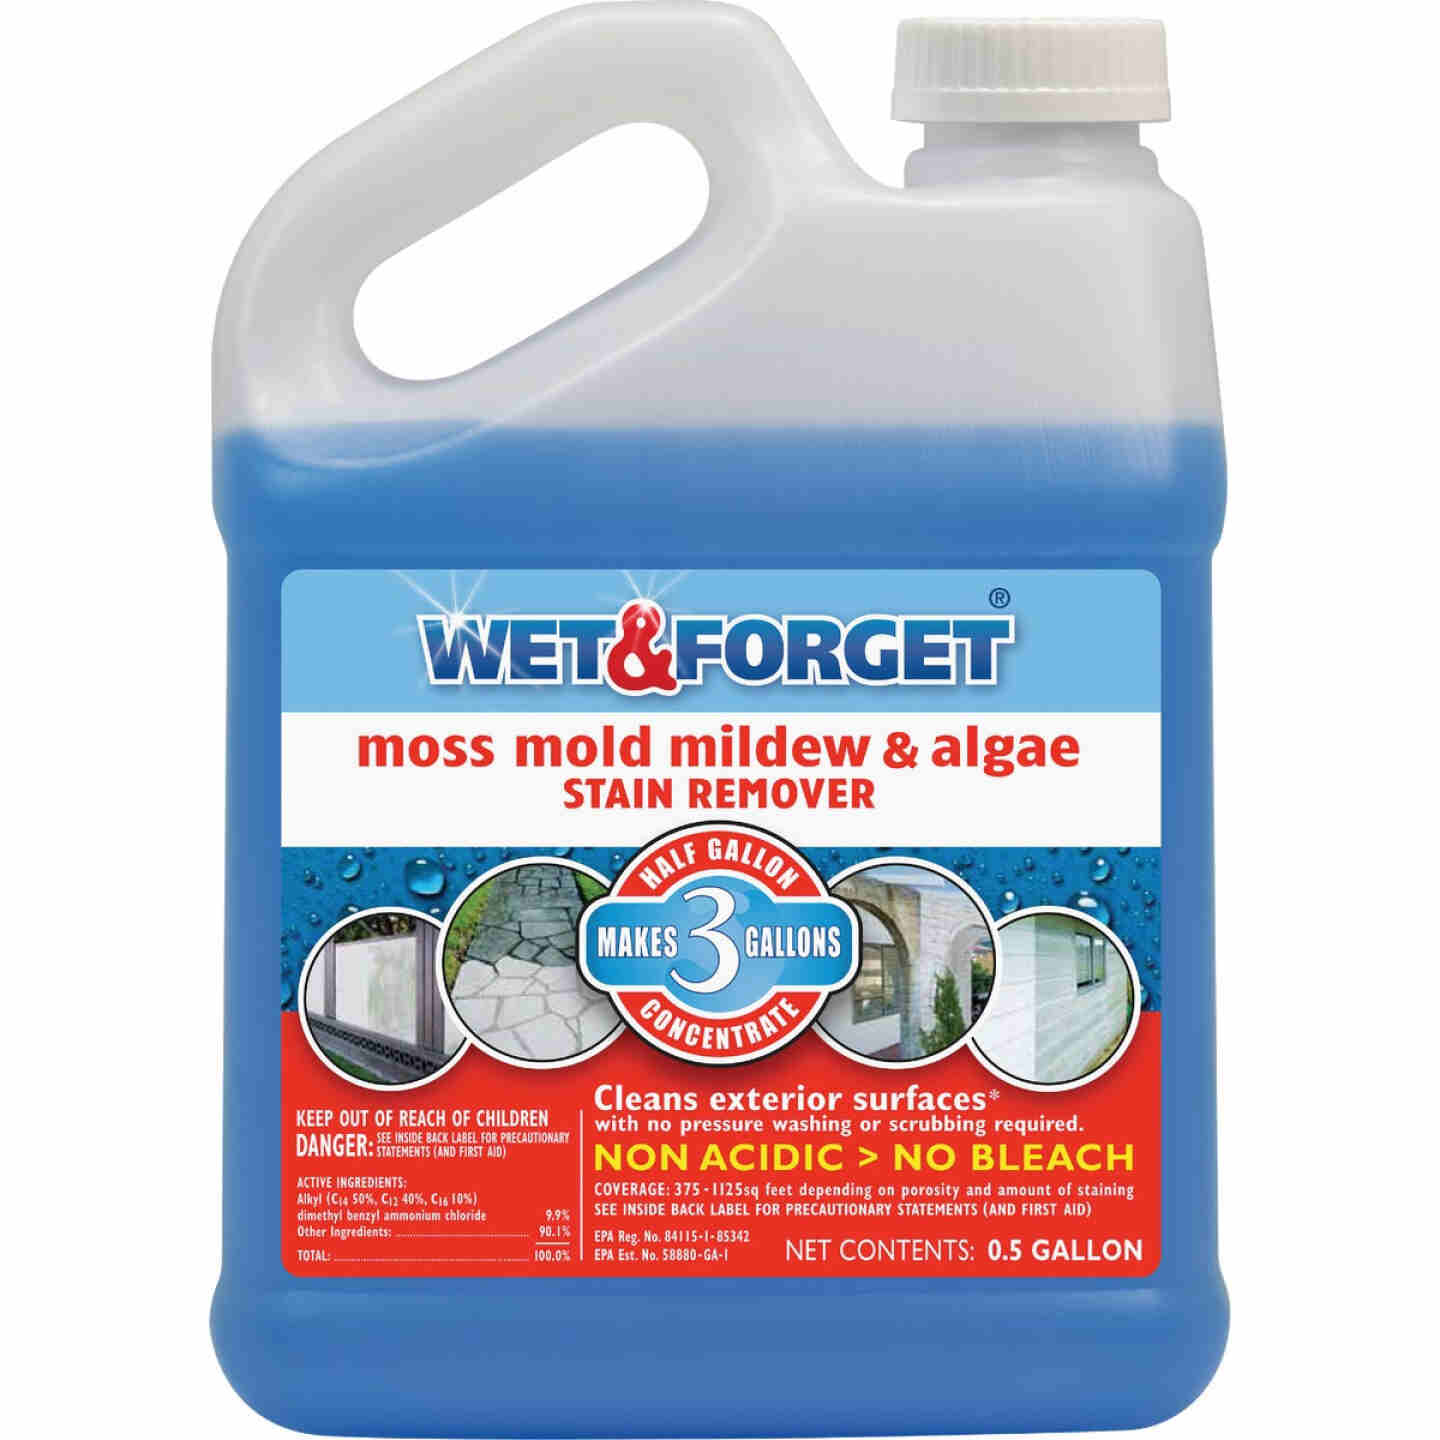 Wet & Forget 1/2 Gal. Liquid Concentrate Moss, Mold, Mildew, & Algae Stain Remover Image 1